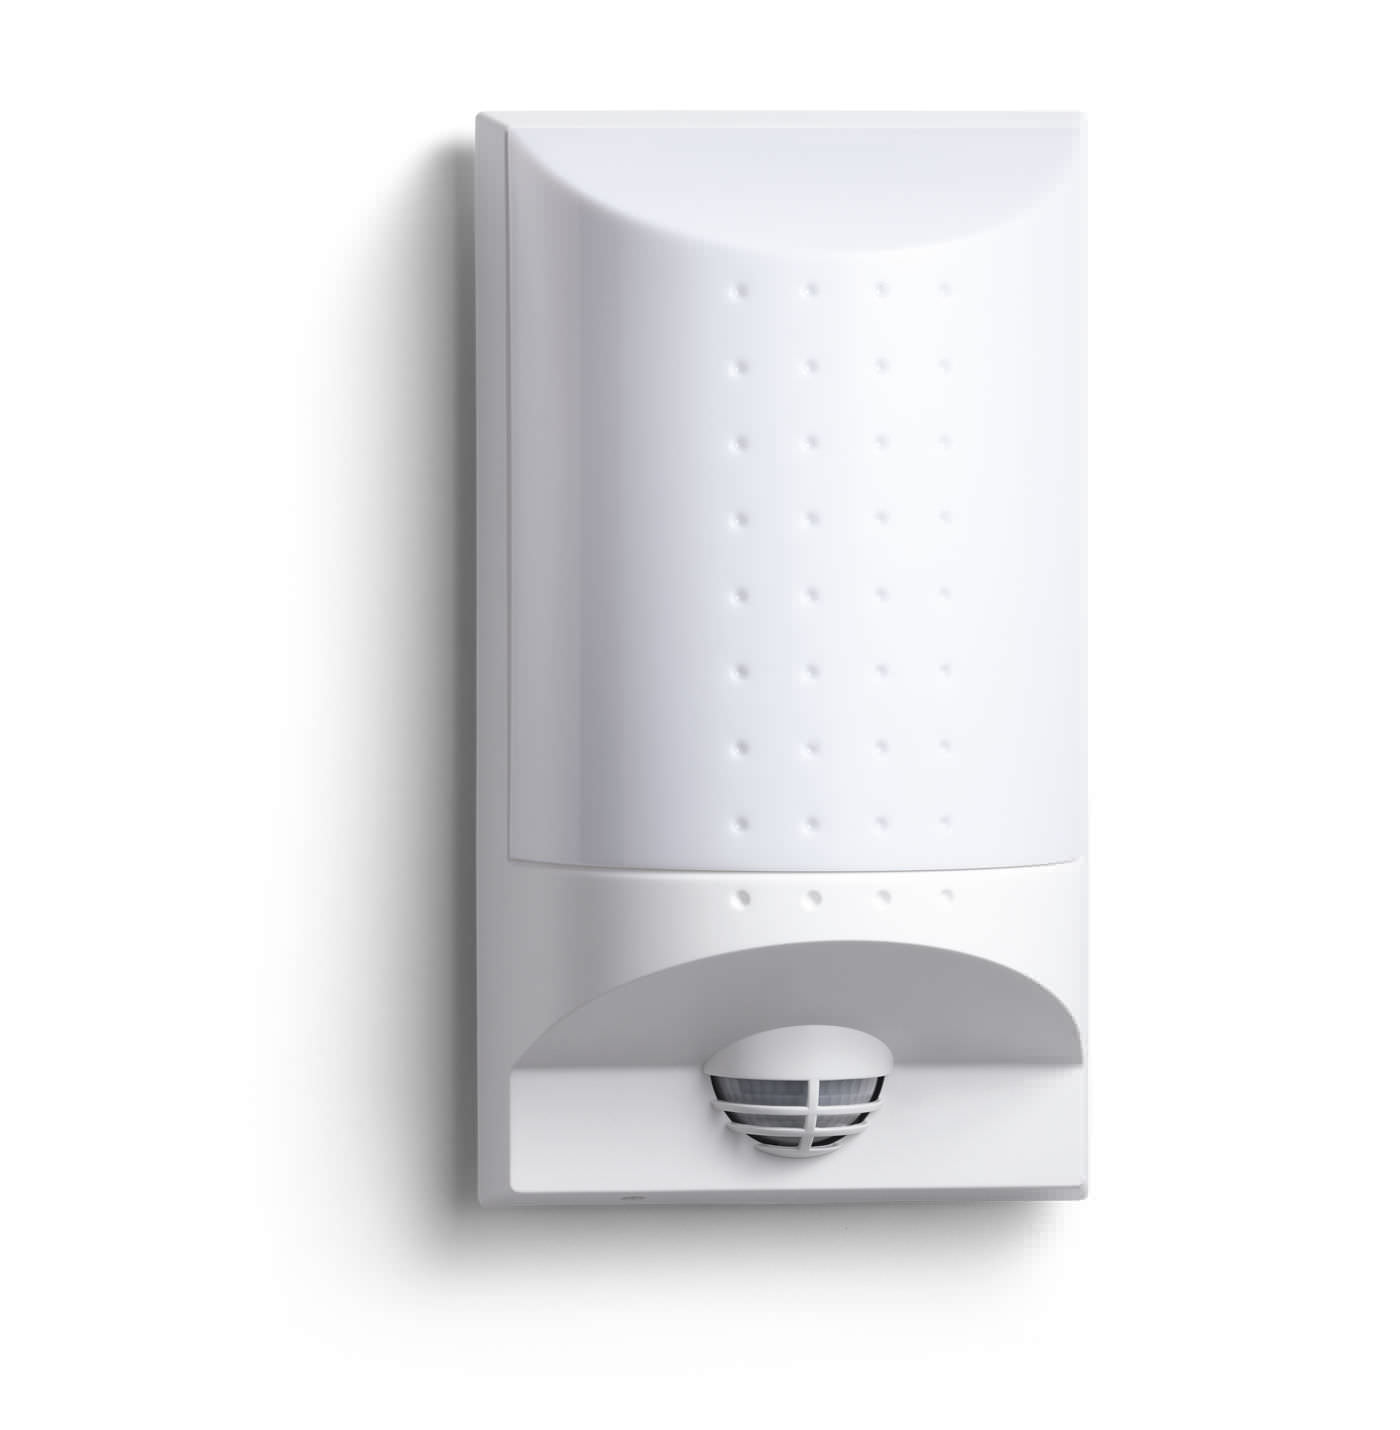 Contemporary Wall Light L 650 Led Steinel Vertrieb Gmbh Outdoor Polycarbonate Rectangular